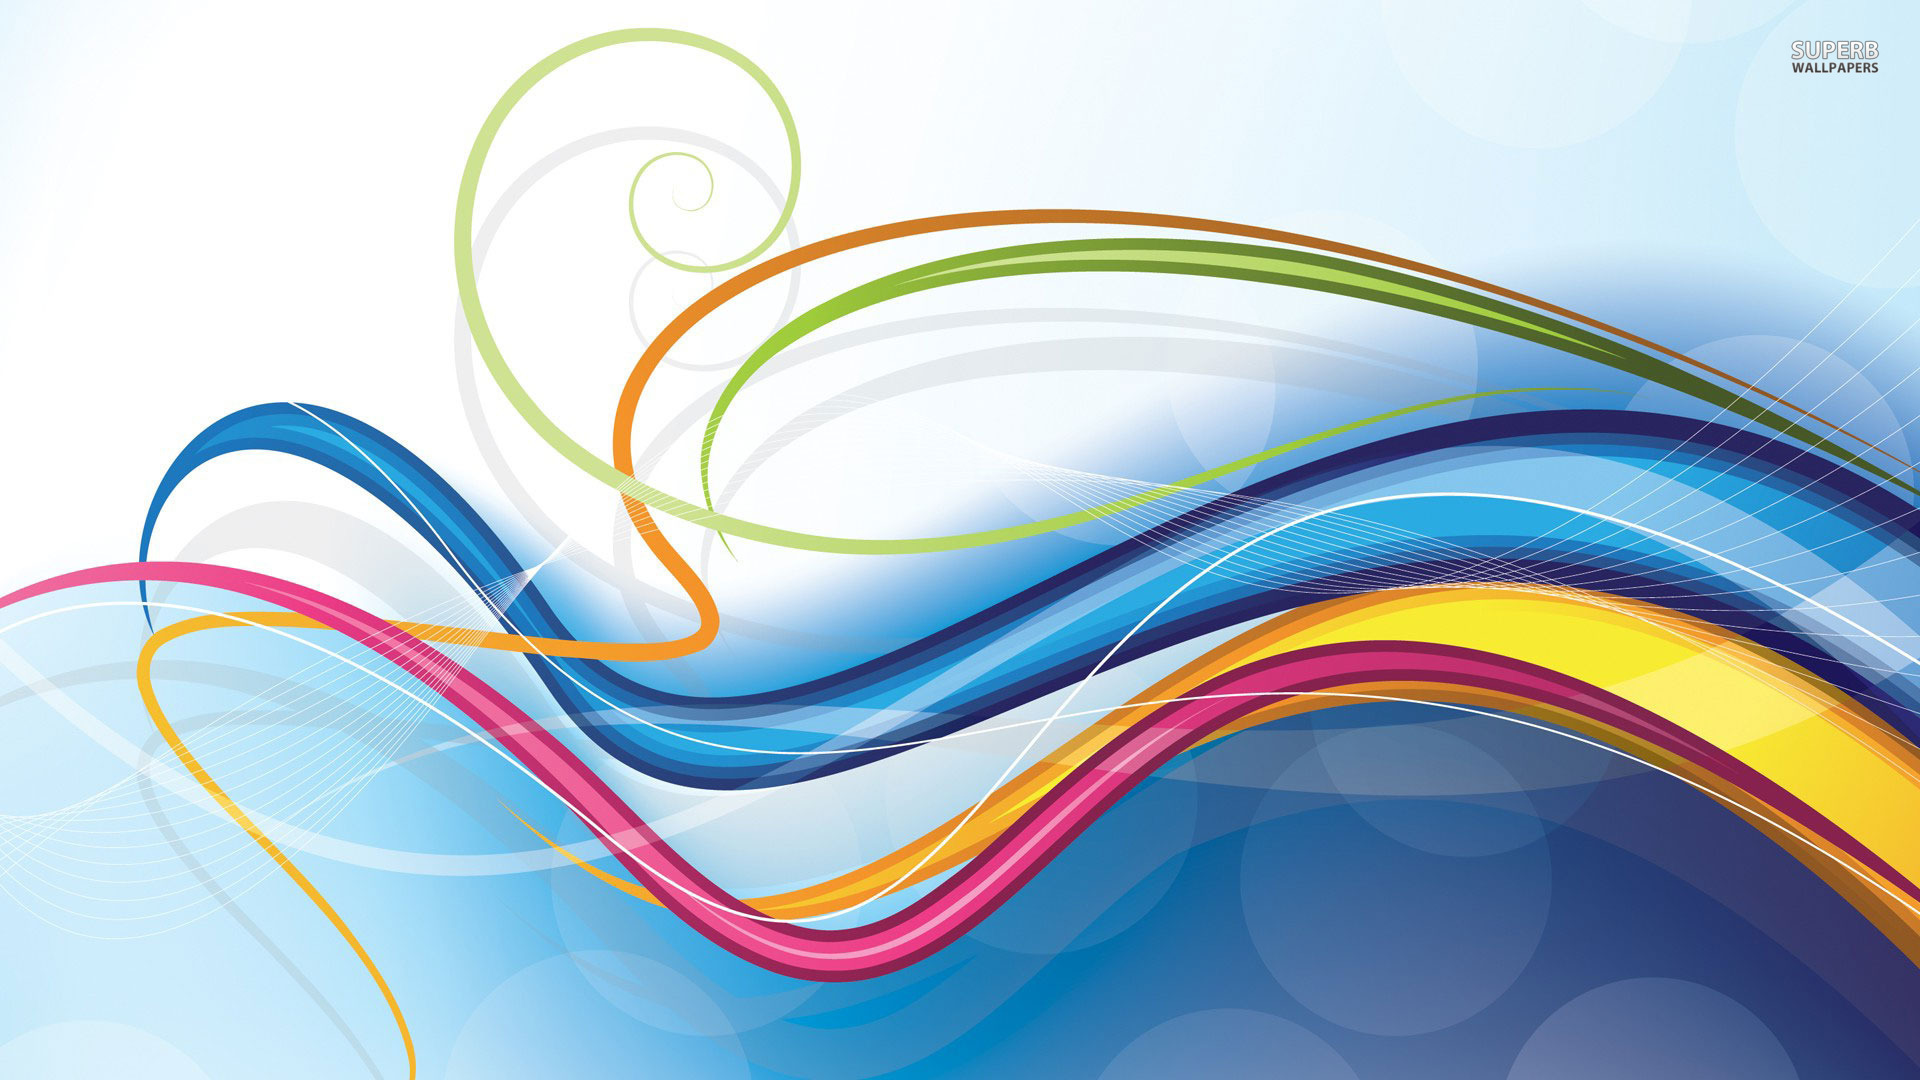 Colorful swirls wallpaper 1920x1080 jpg